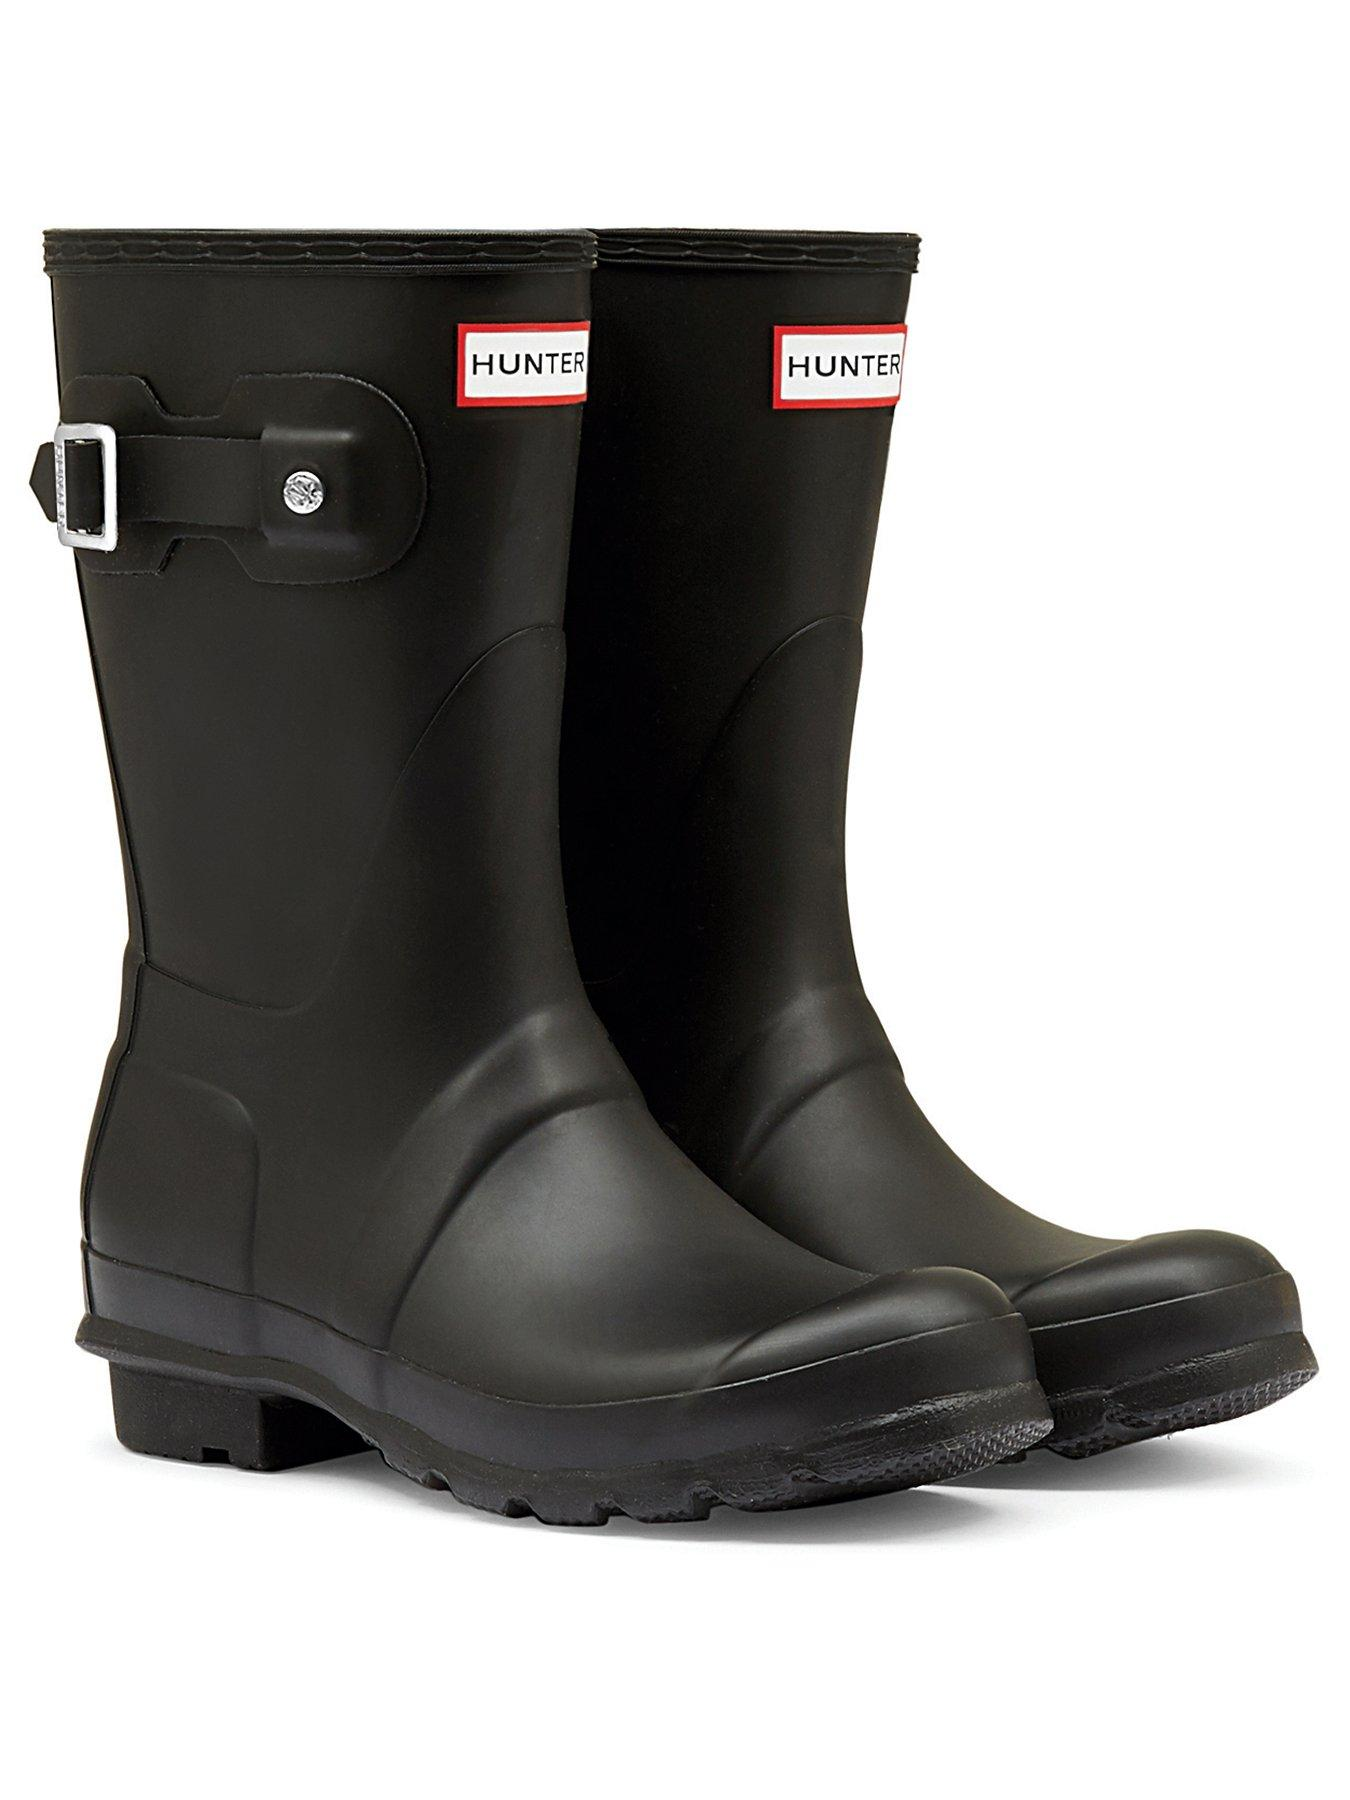 Scrub MX Red//White Unisex Wellington Boots Rubber Wellies Variety Sizes